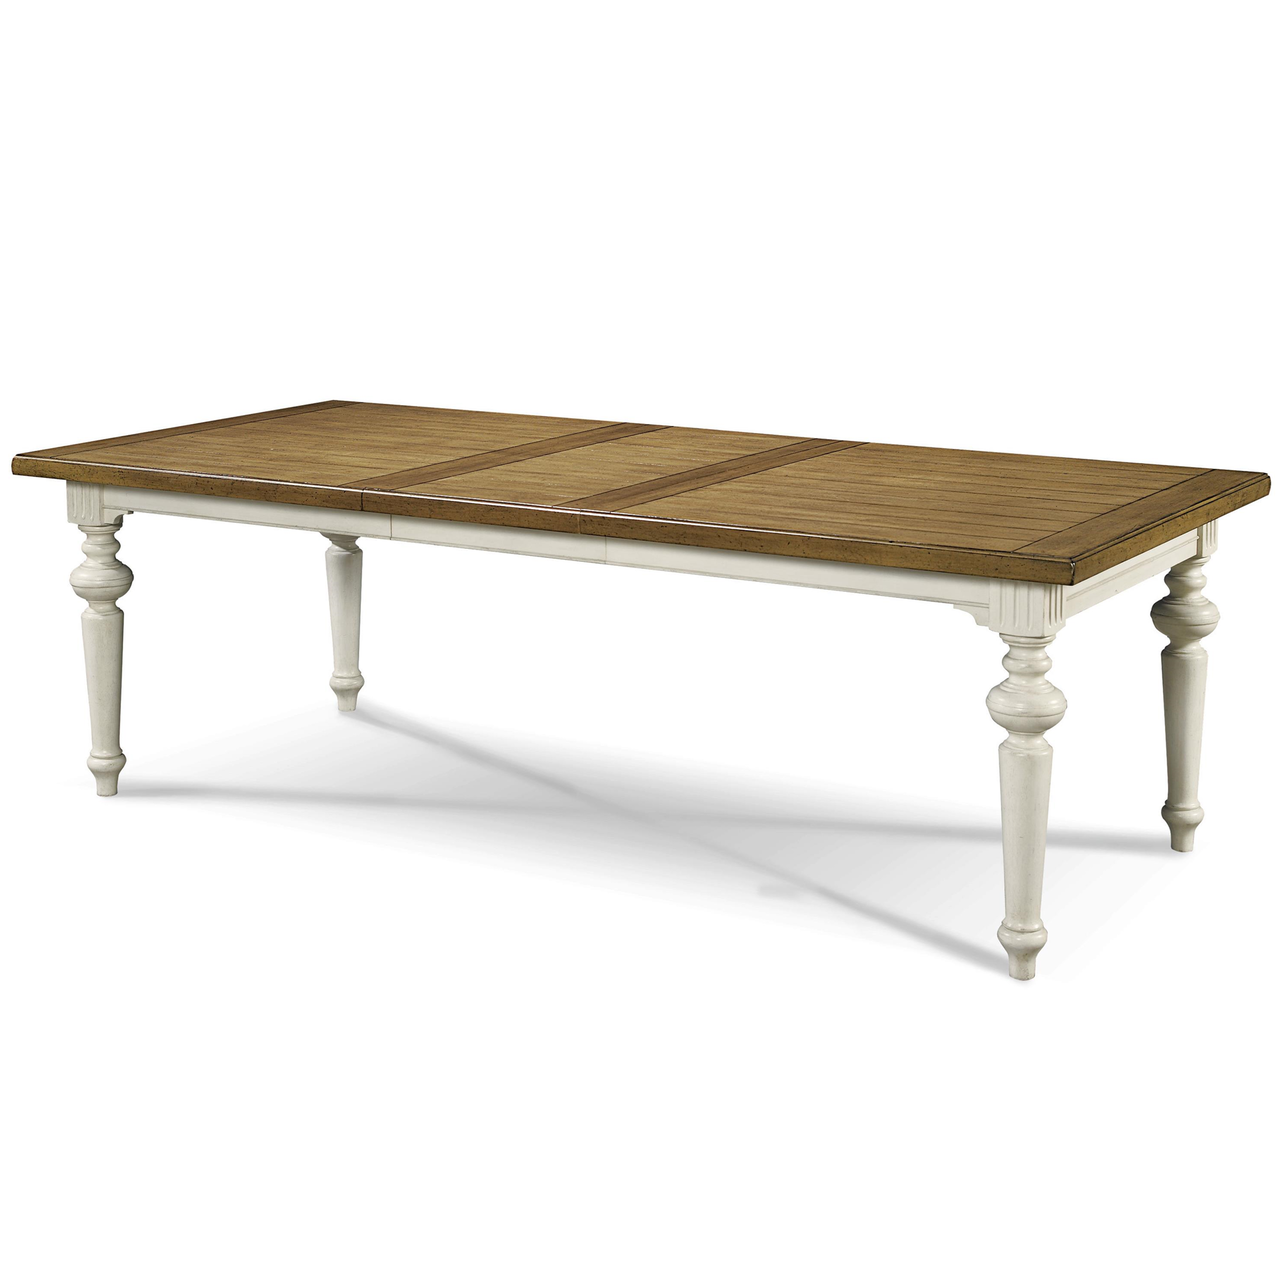 Country chic maple wood white extension dining table for Extension dining table